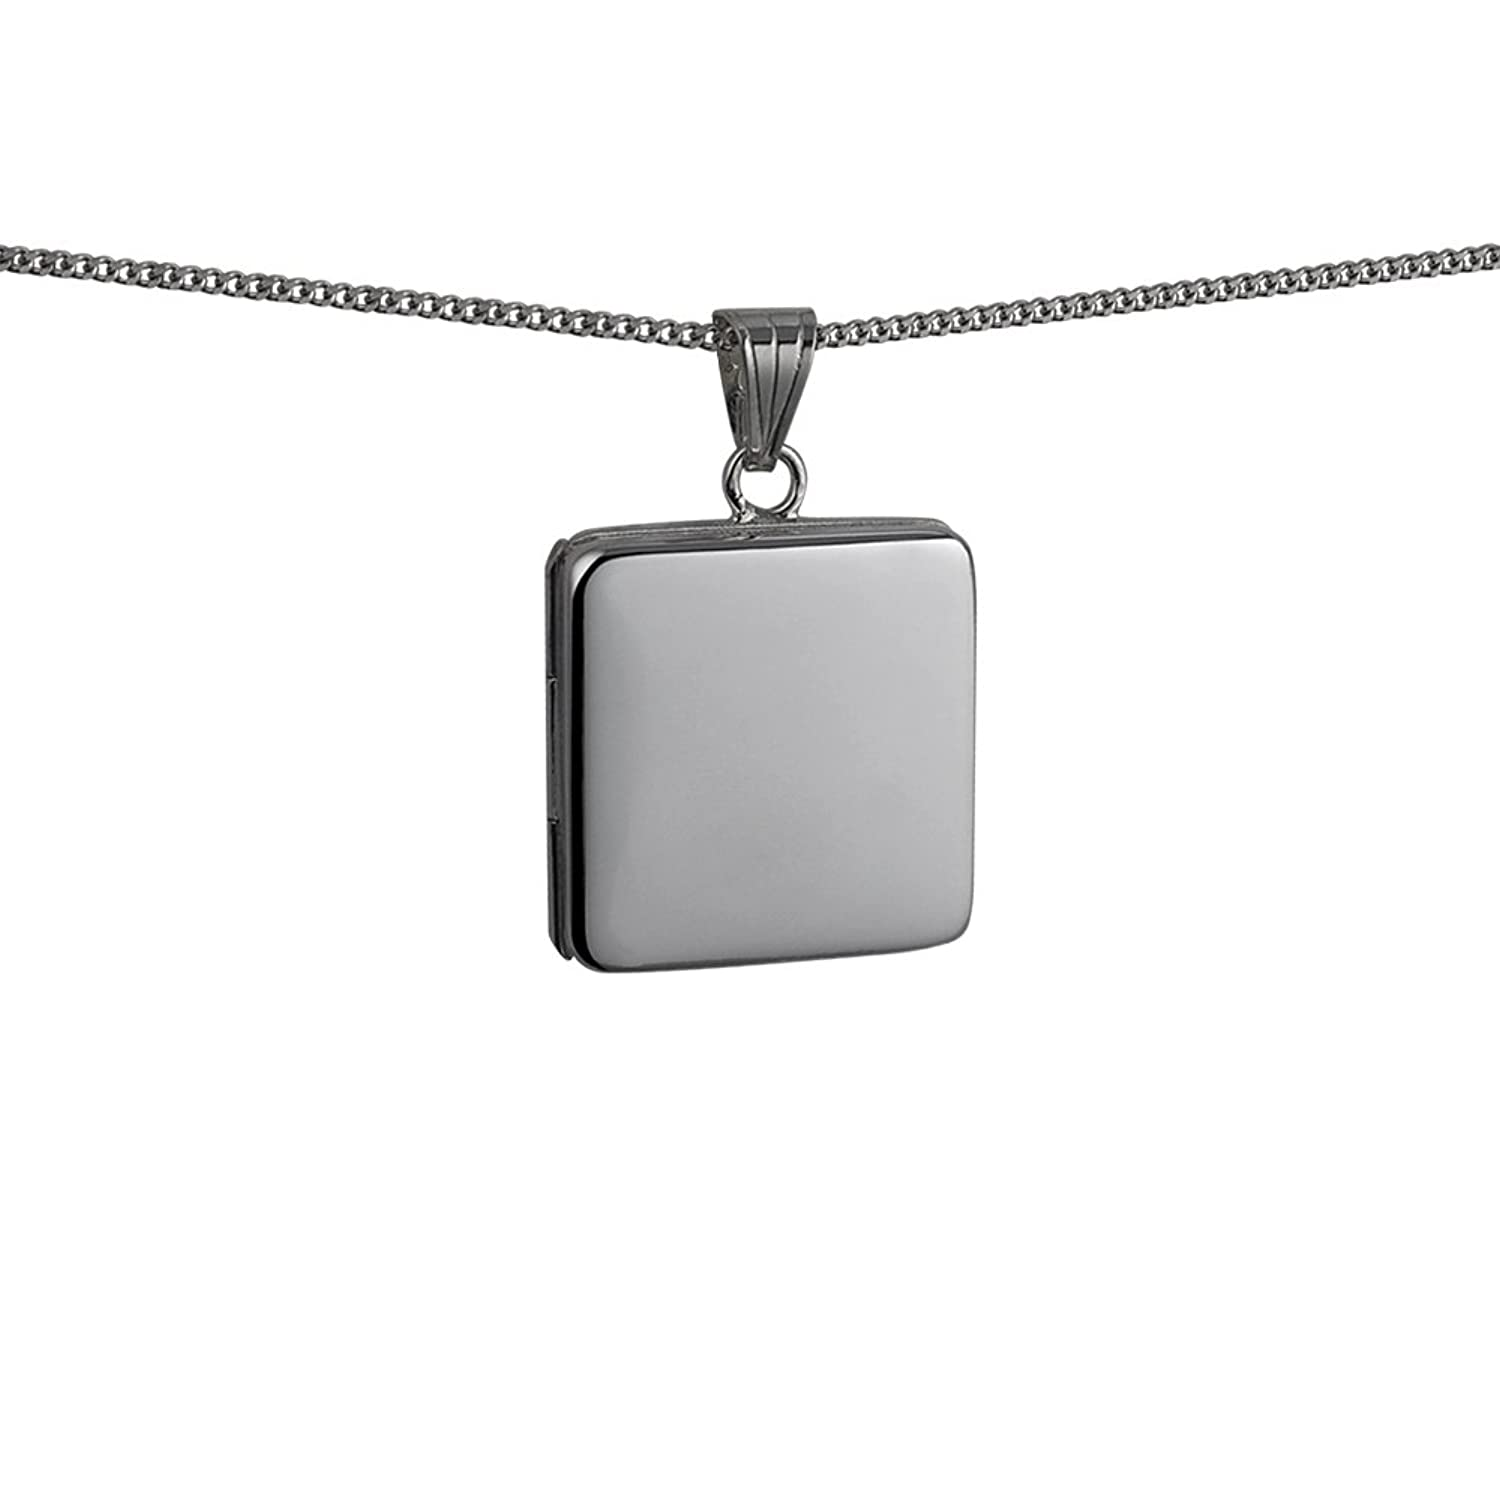 square pendant picture jewelry shape listing fullxfull frame glass locket charm silver hinged double memory sided il lockets box